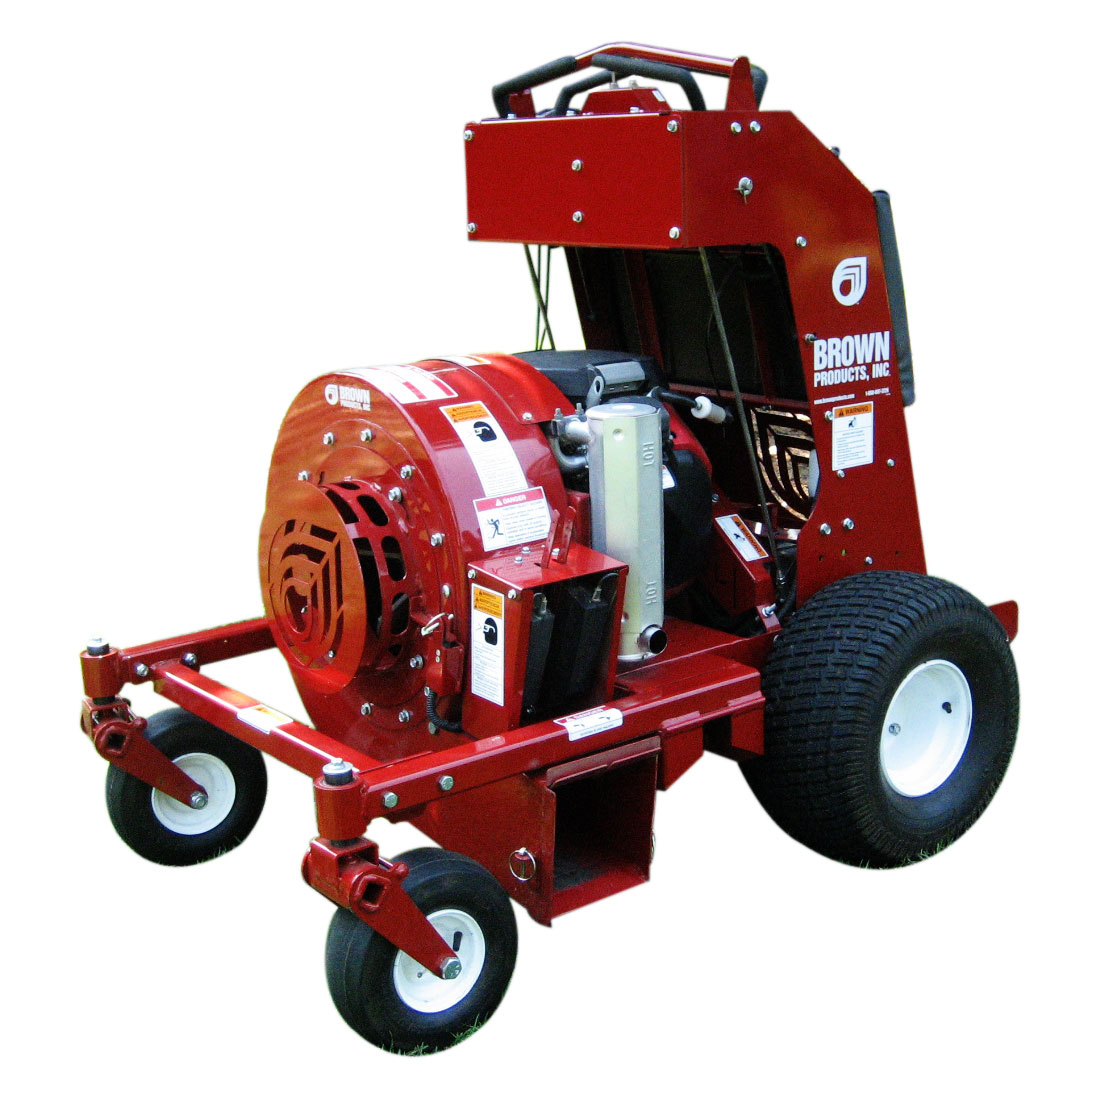 Stand/Ride On Leaf Blower Rental